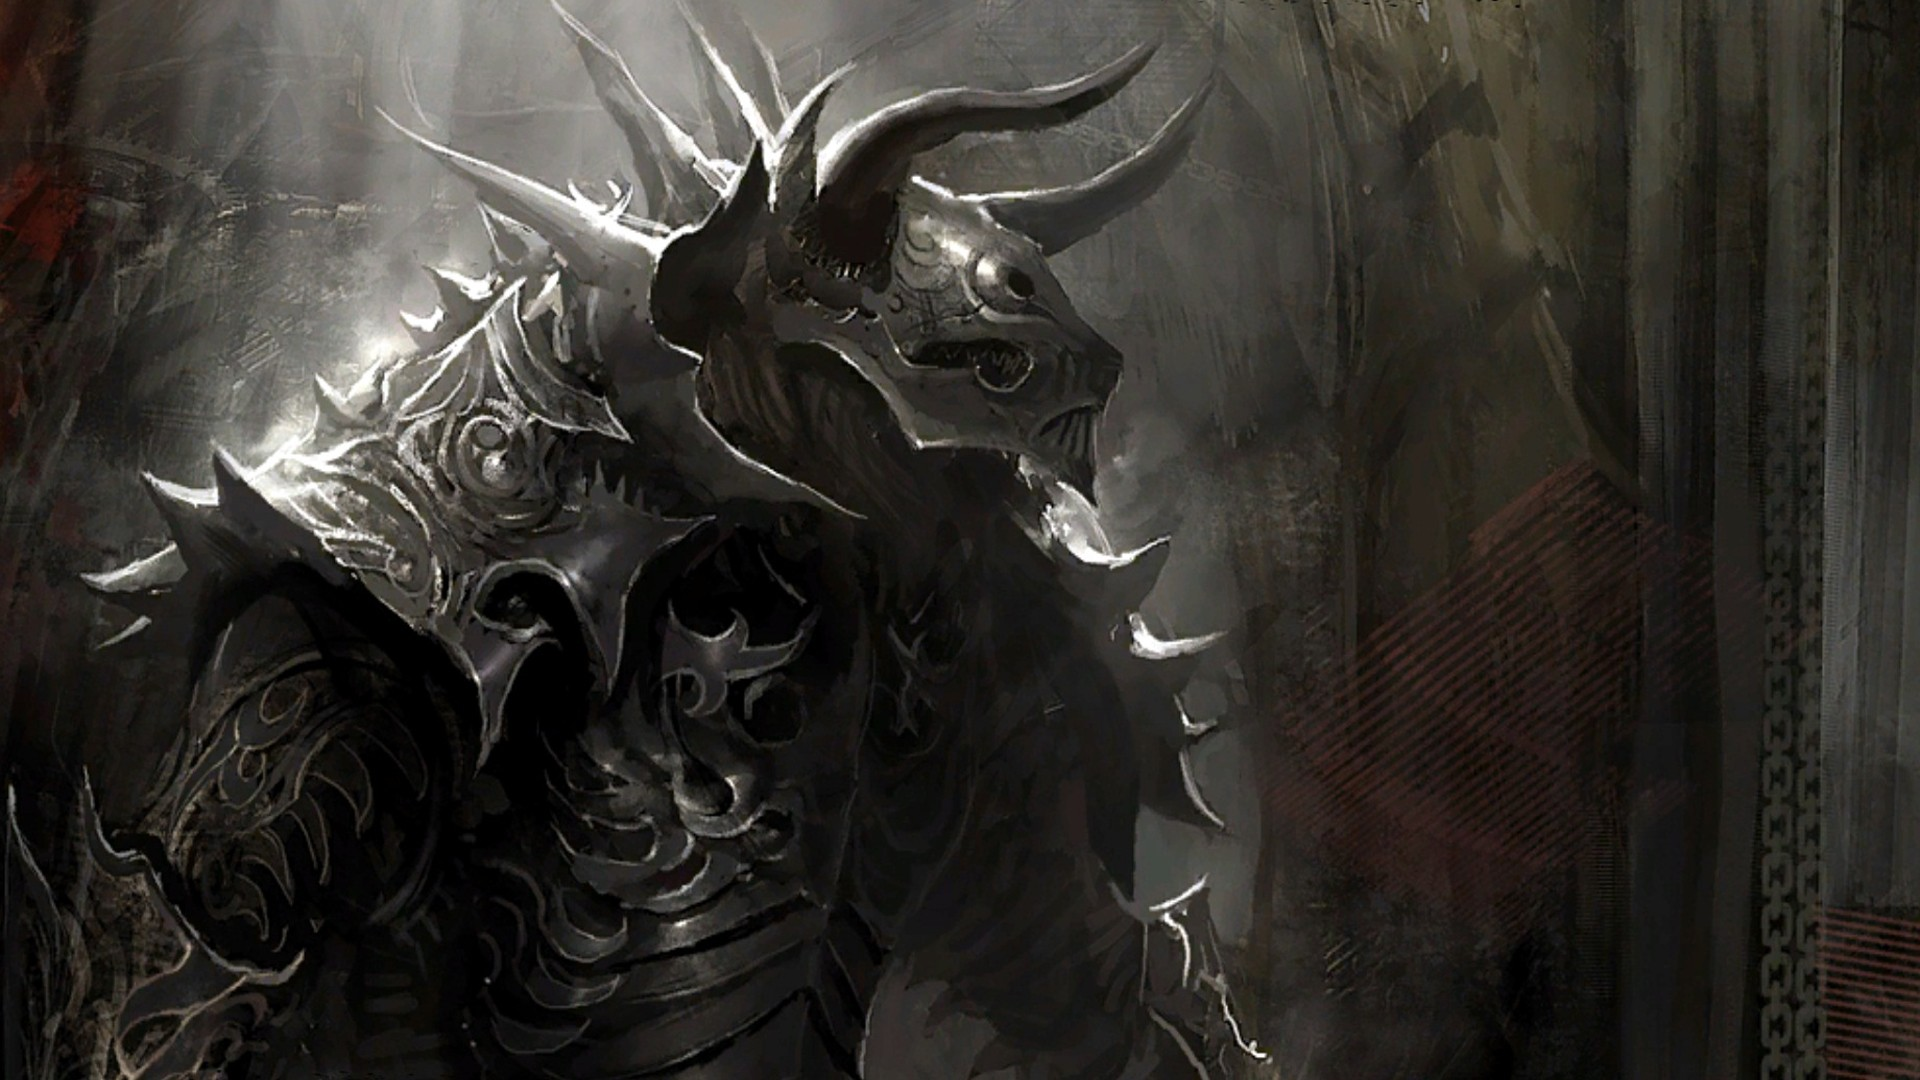 Guild Wars 2 Video Games Charr Wallpapers Hd Desktop: Guild Wars 2 Full HD Wallpaper And Background Image